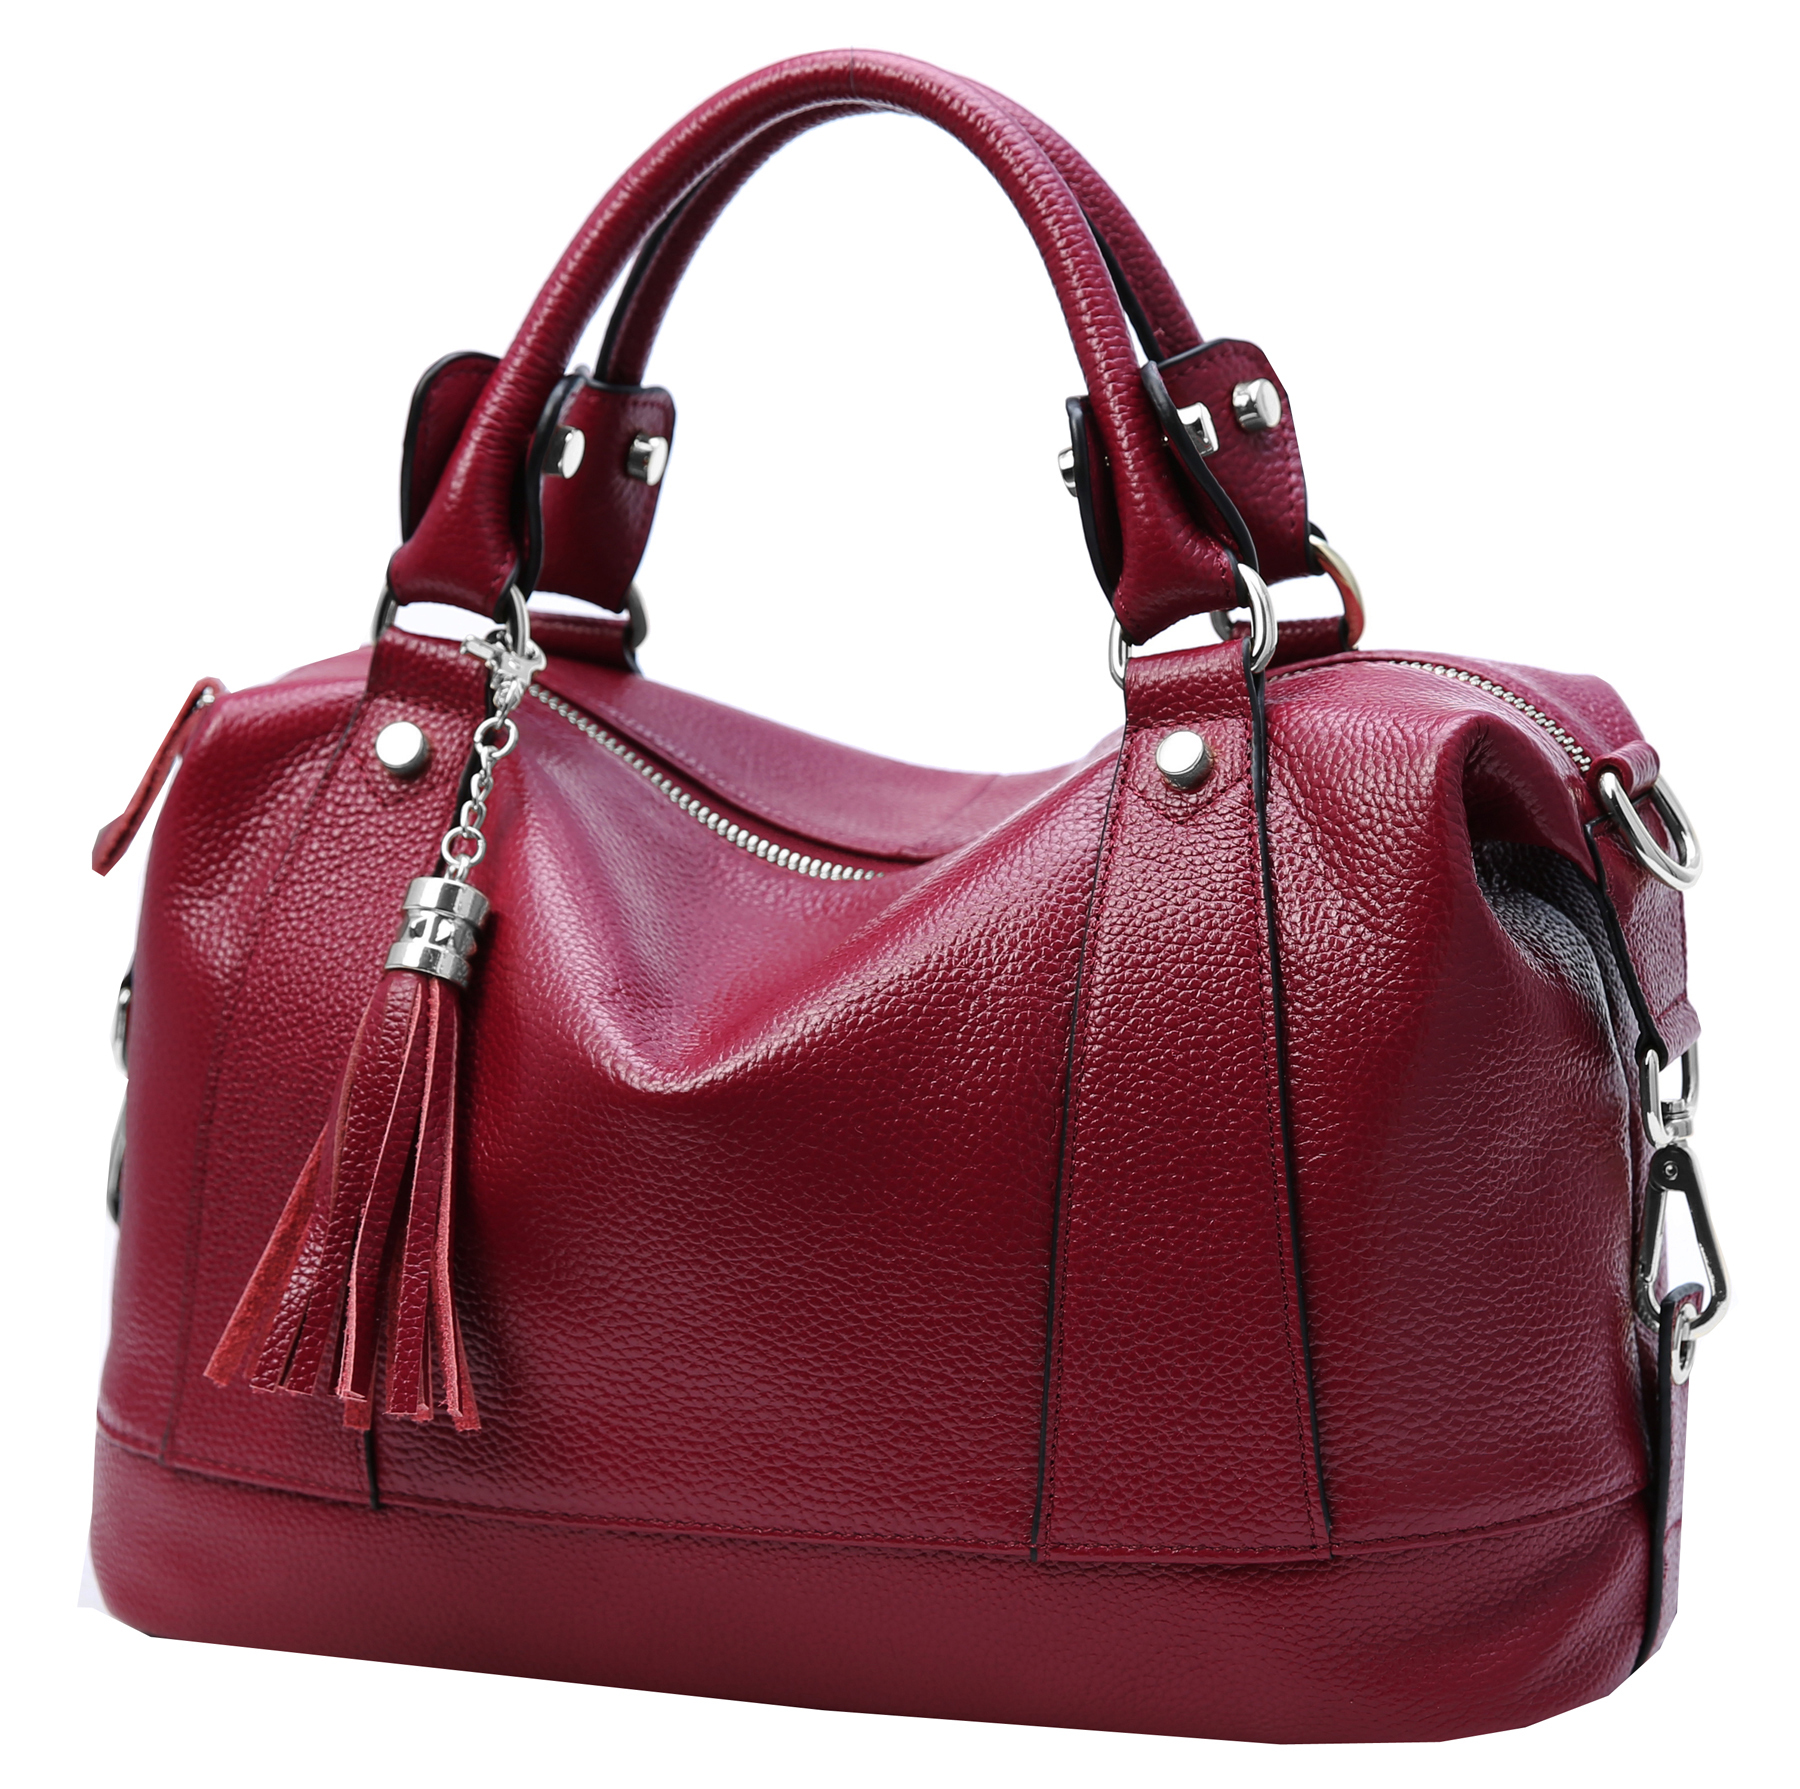 9a576f548a3 Heshe Leather Shoulder Bag Womens Tote Top Handle Handbags Cross ...